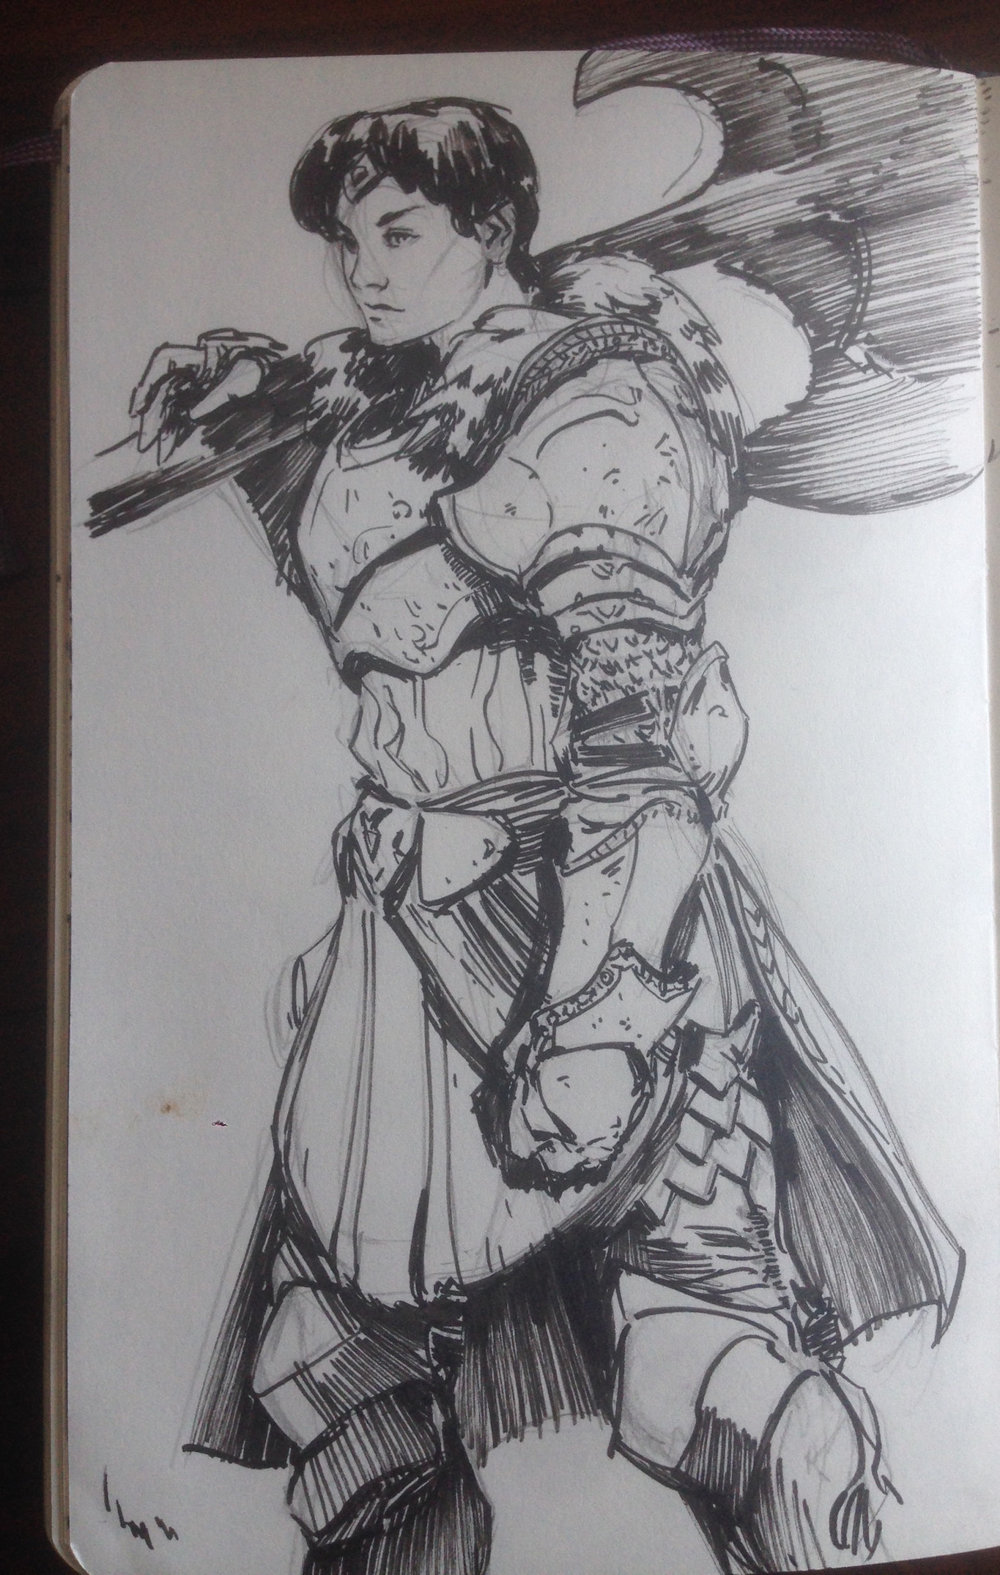 #MaySketchaDay 07 - Daily exercise in the the battle against perfectionism and fear. Been digging the armor lately #tomscholes #knight #armor #axe #inks #sketchbook #art #asketchaday #instagram #instaart